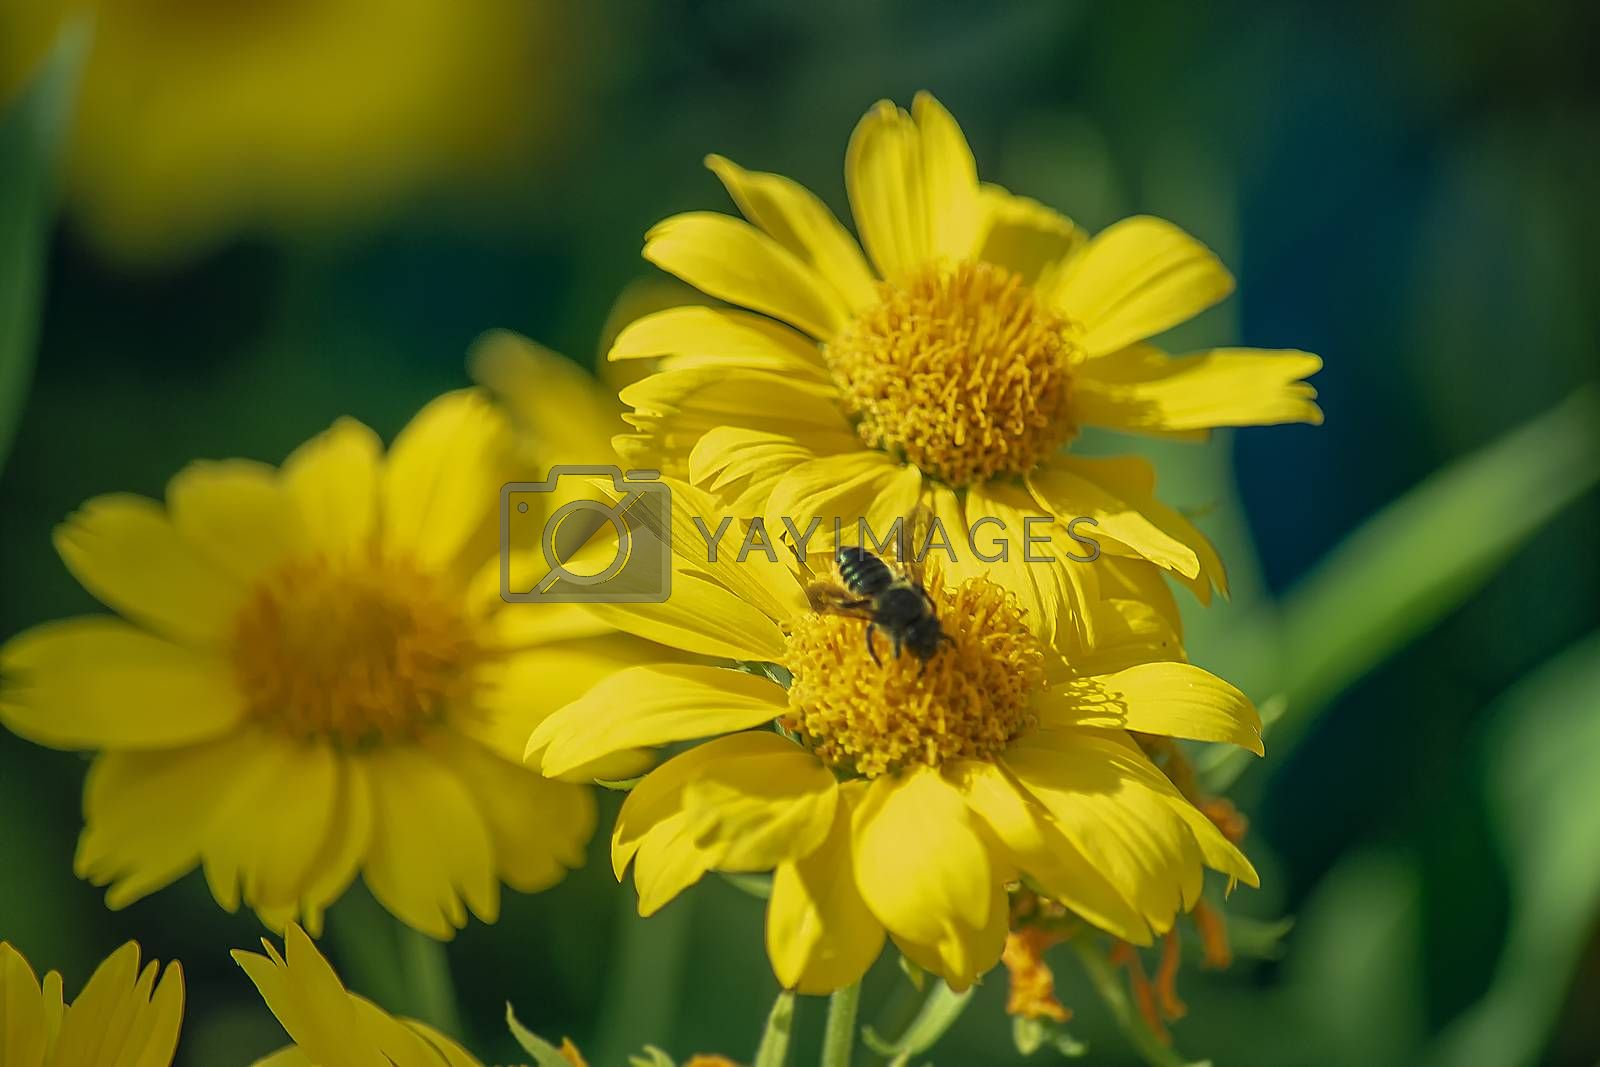 The bee sits and collects nectar and pollen.